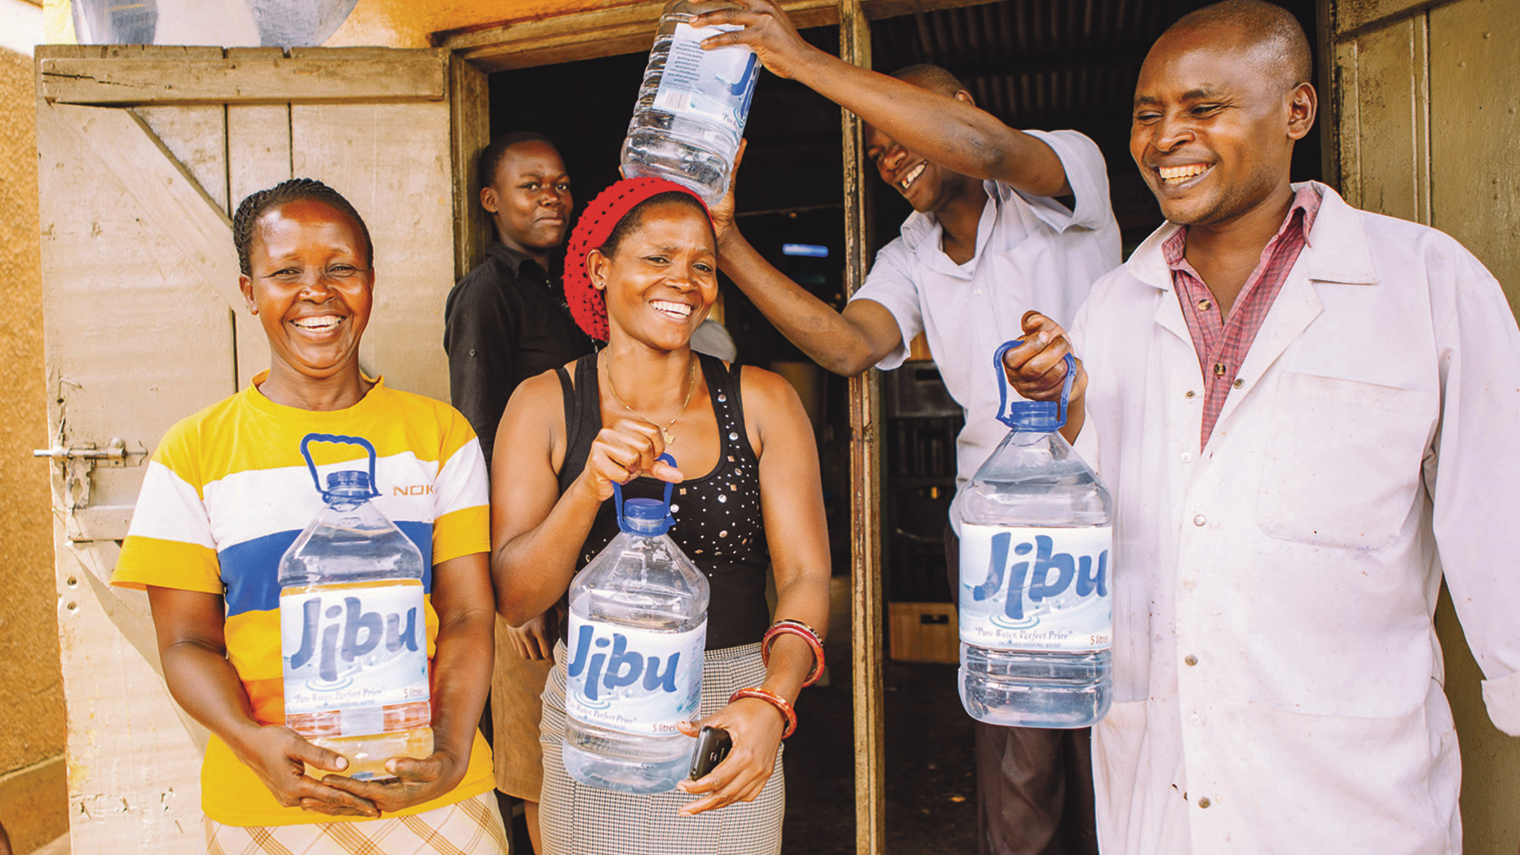 Jibu uses a pure franchise model to finance and train young people to run their own clean water franchise